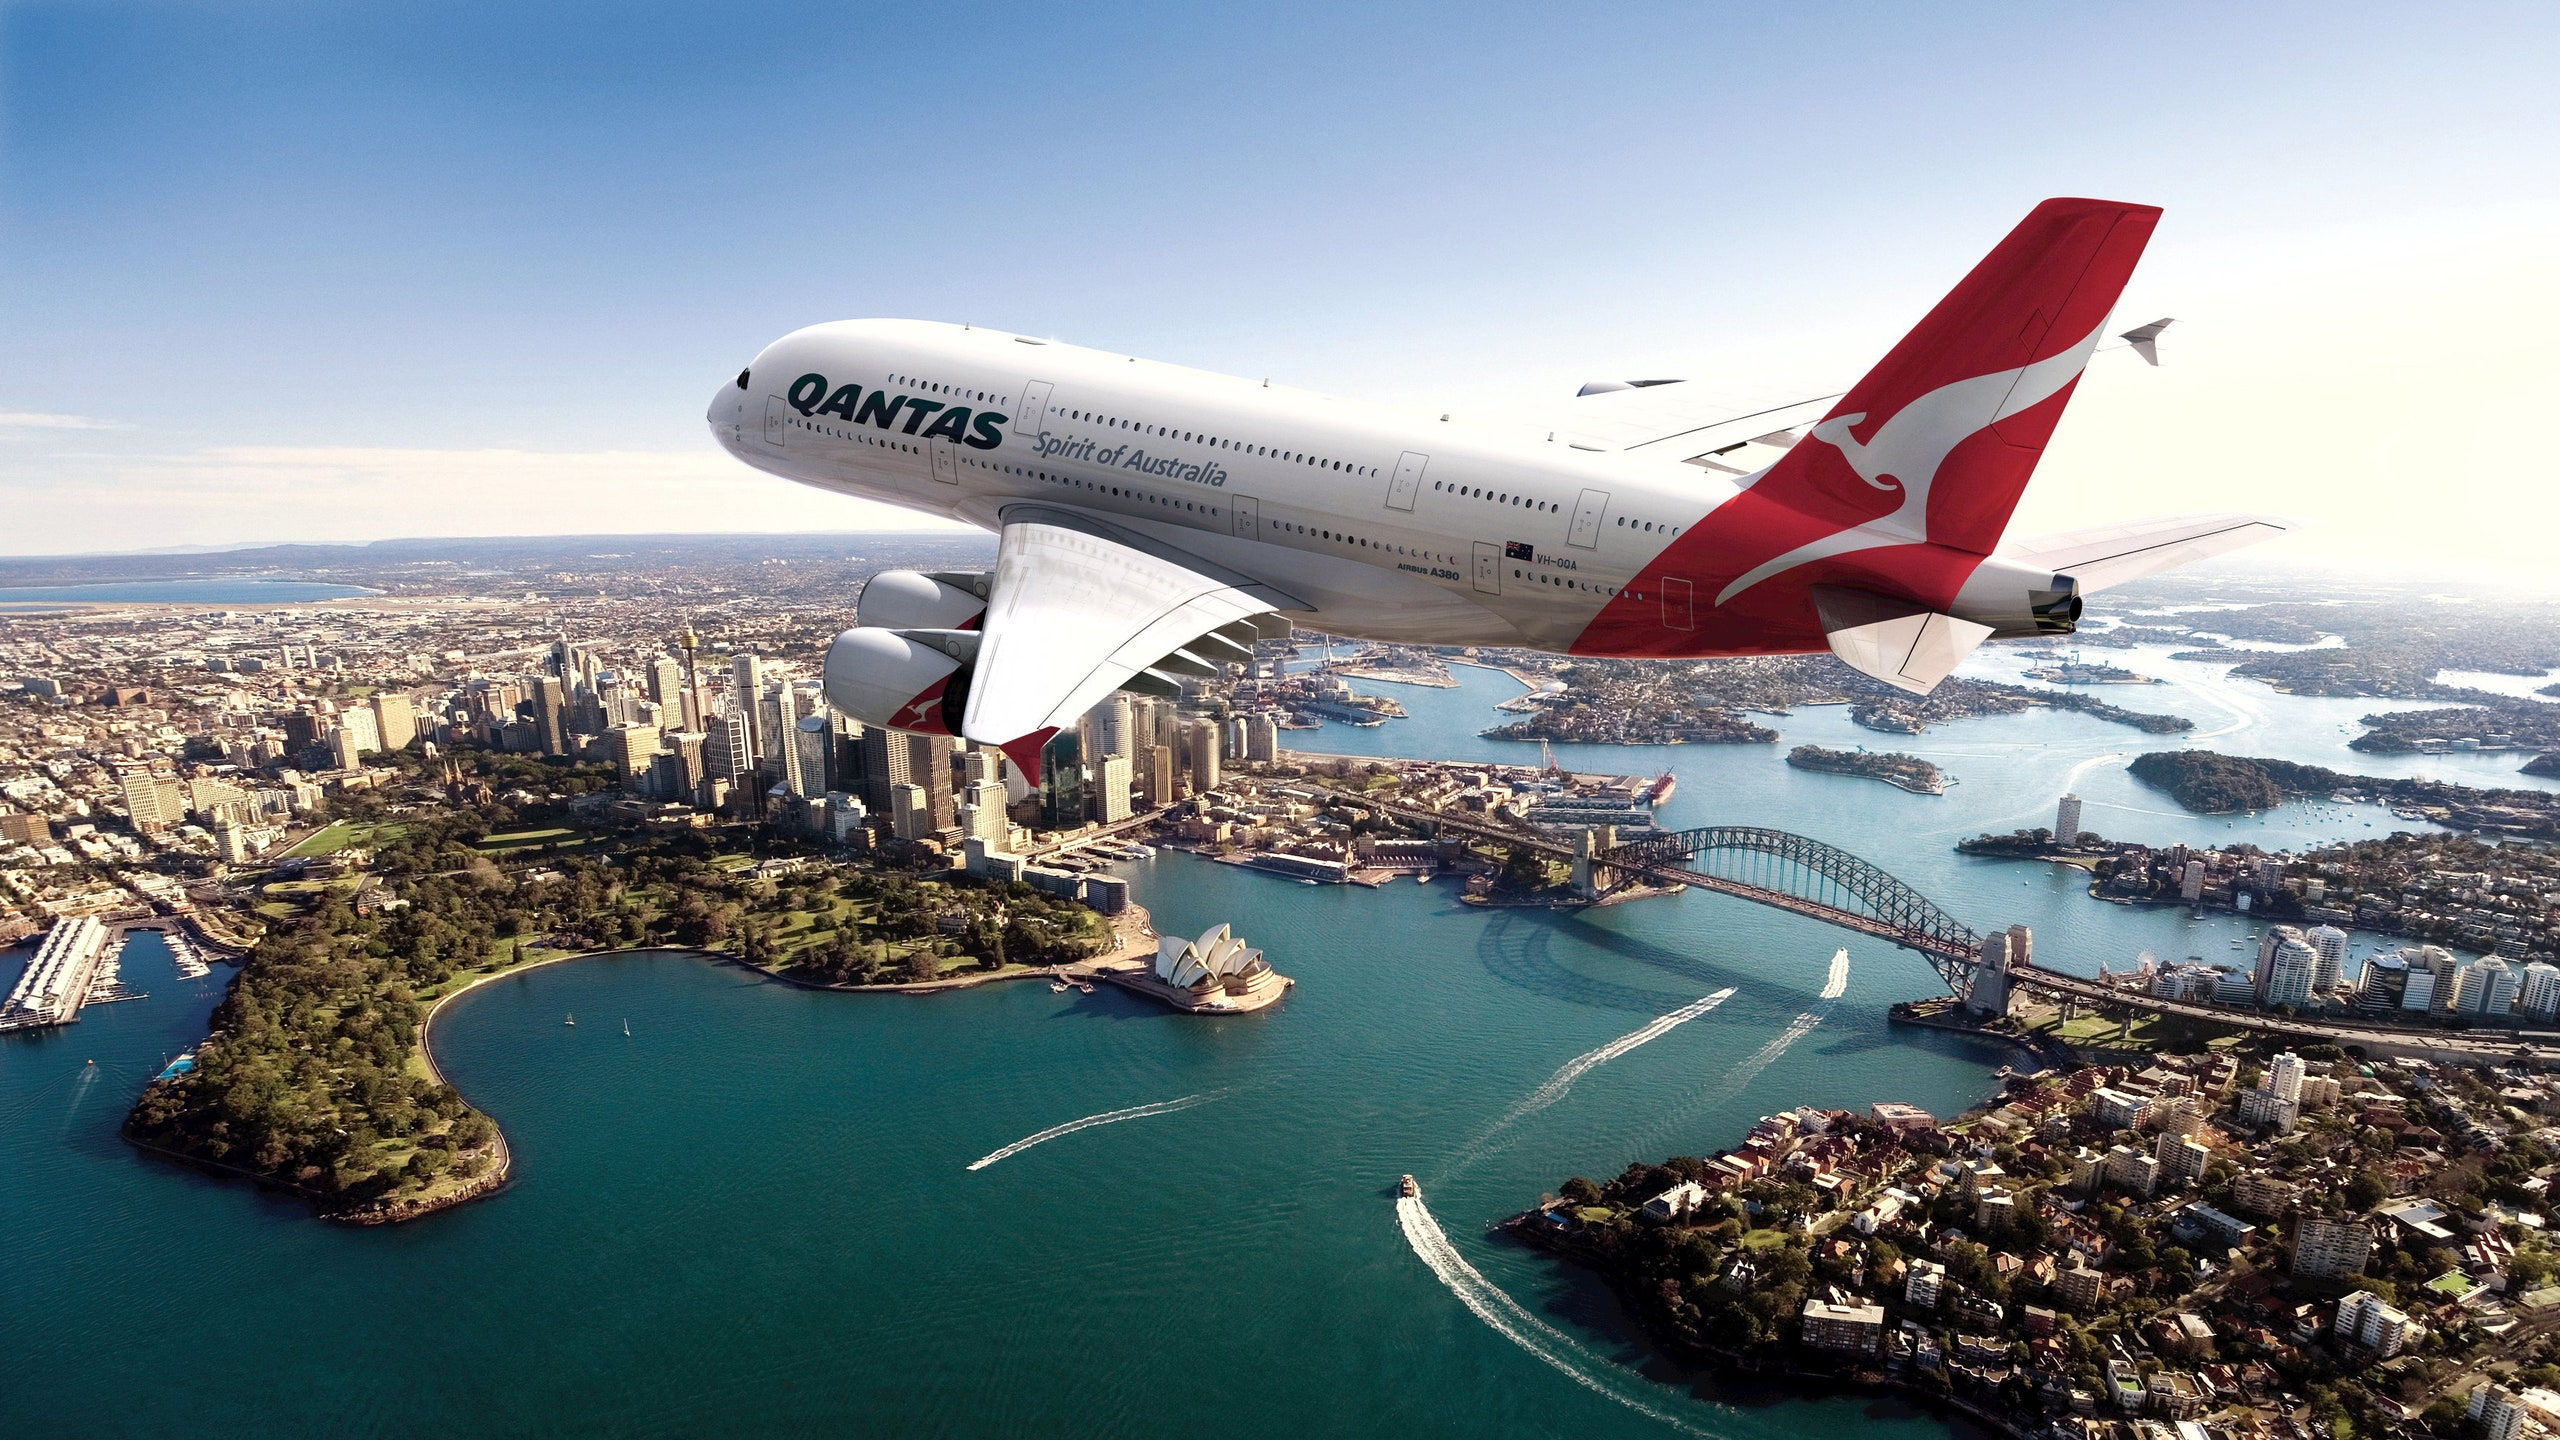 Loss of Australian airline company Qantas in the second half-year of 2020 exceeded 1 billion USD